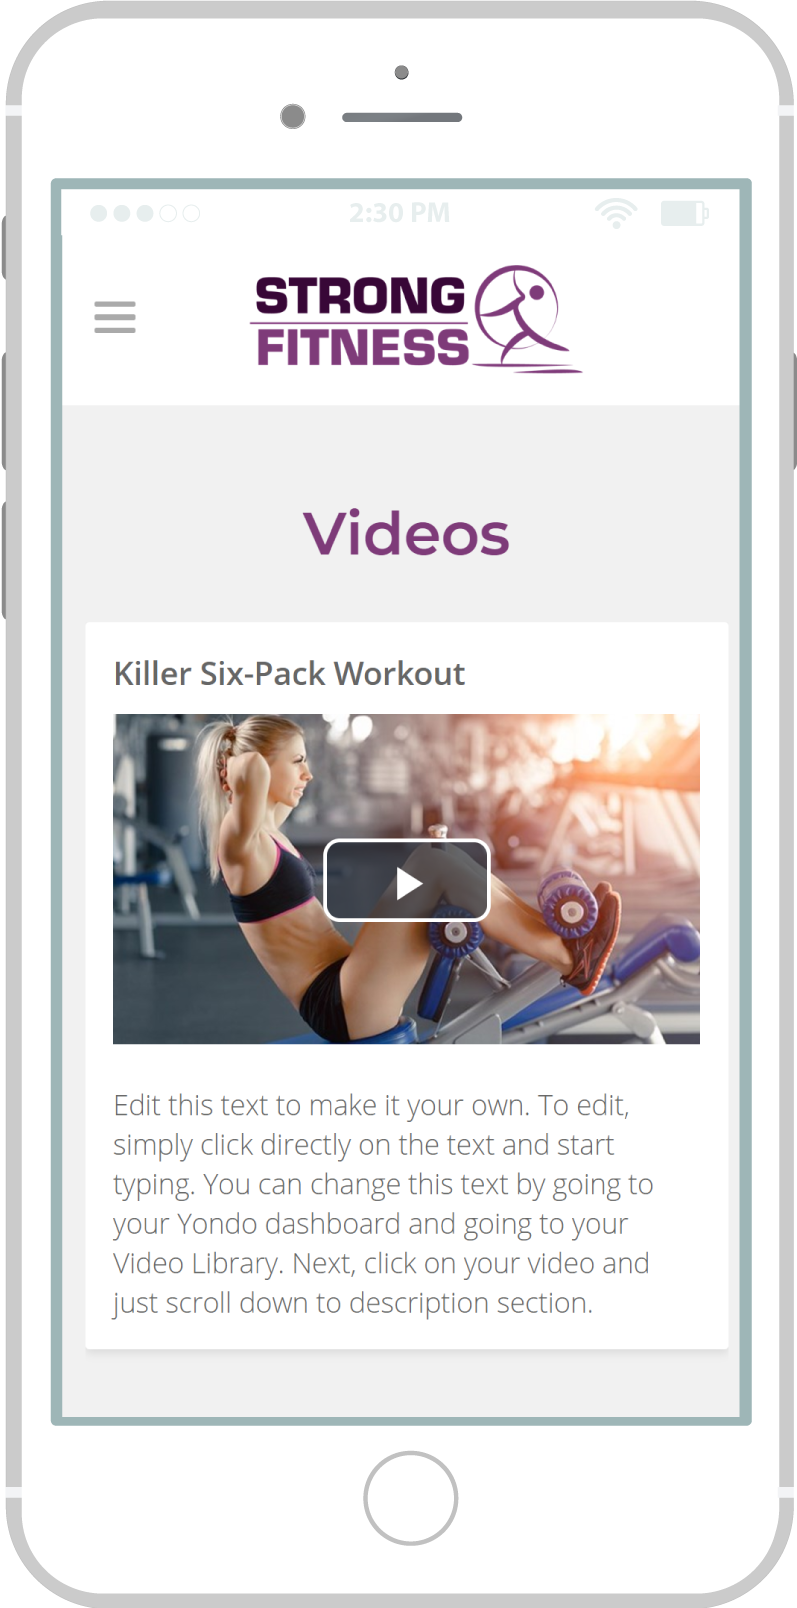 All-In-One Online Fitness Studio Website - Strong Fitness Mobile view 2 Example